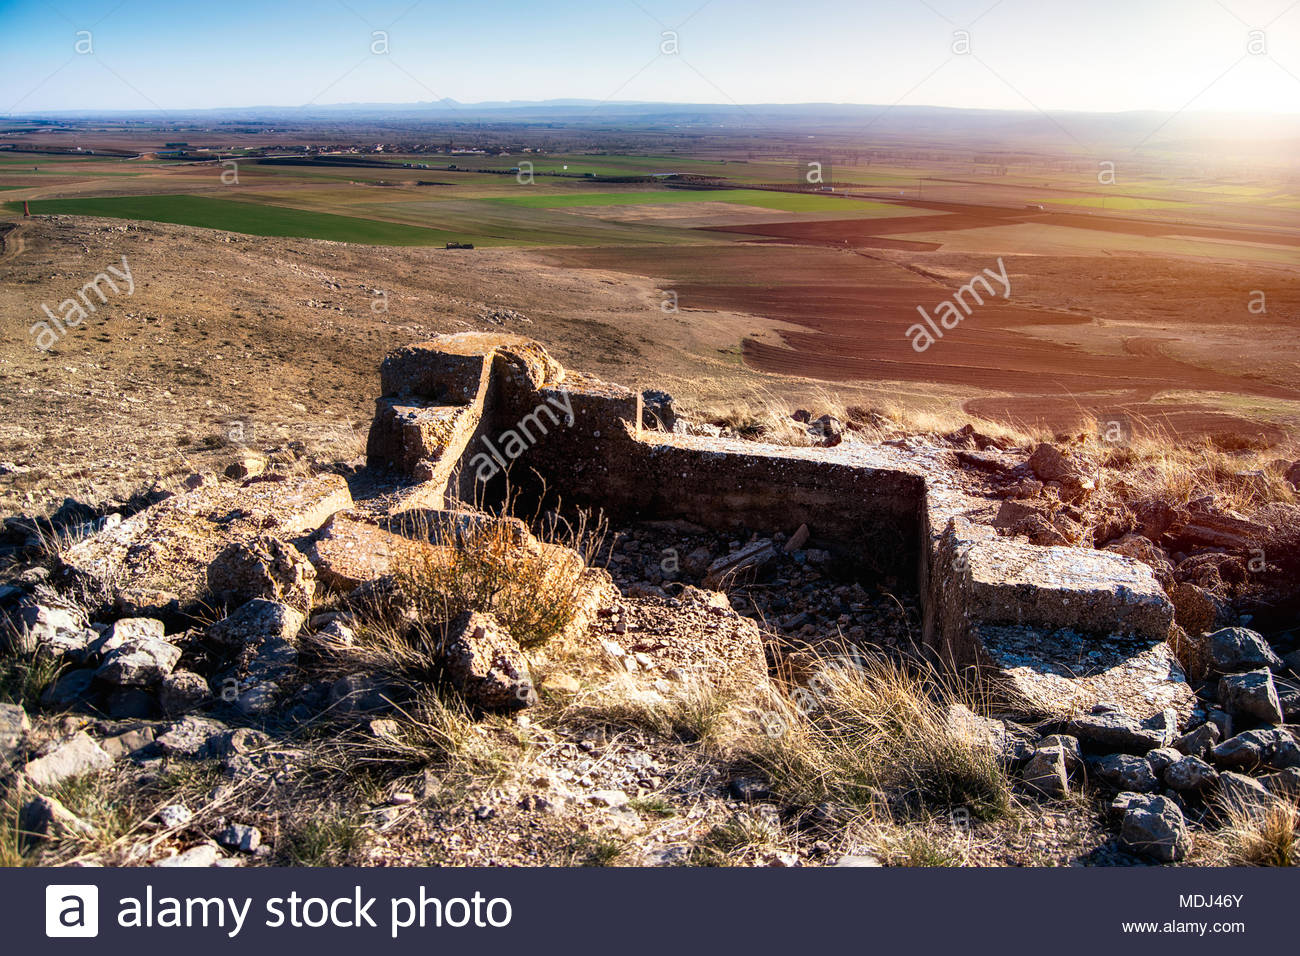 Remains of the Spanish Civil War - Stock Image